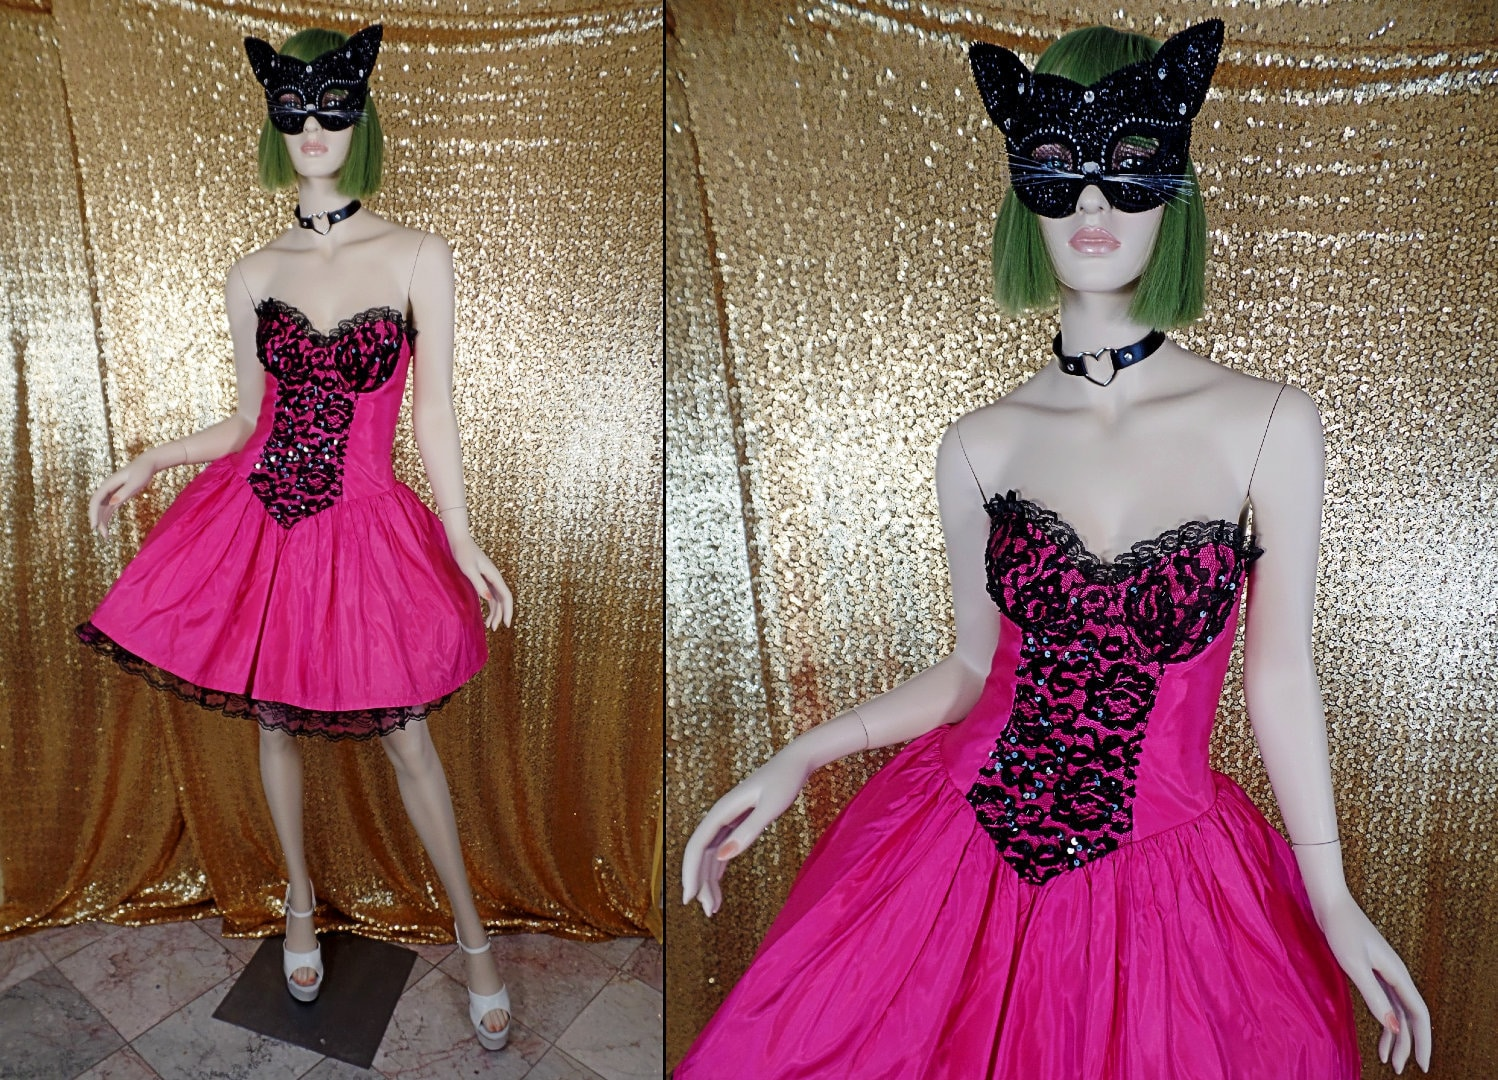 80s Dresses   Casual to Party Dresses Vintage 1980S Tadashi Hot Pink  Black Strapless Tutu PartyProm Dress - Small $19.00 AT vintagedancer.com